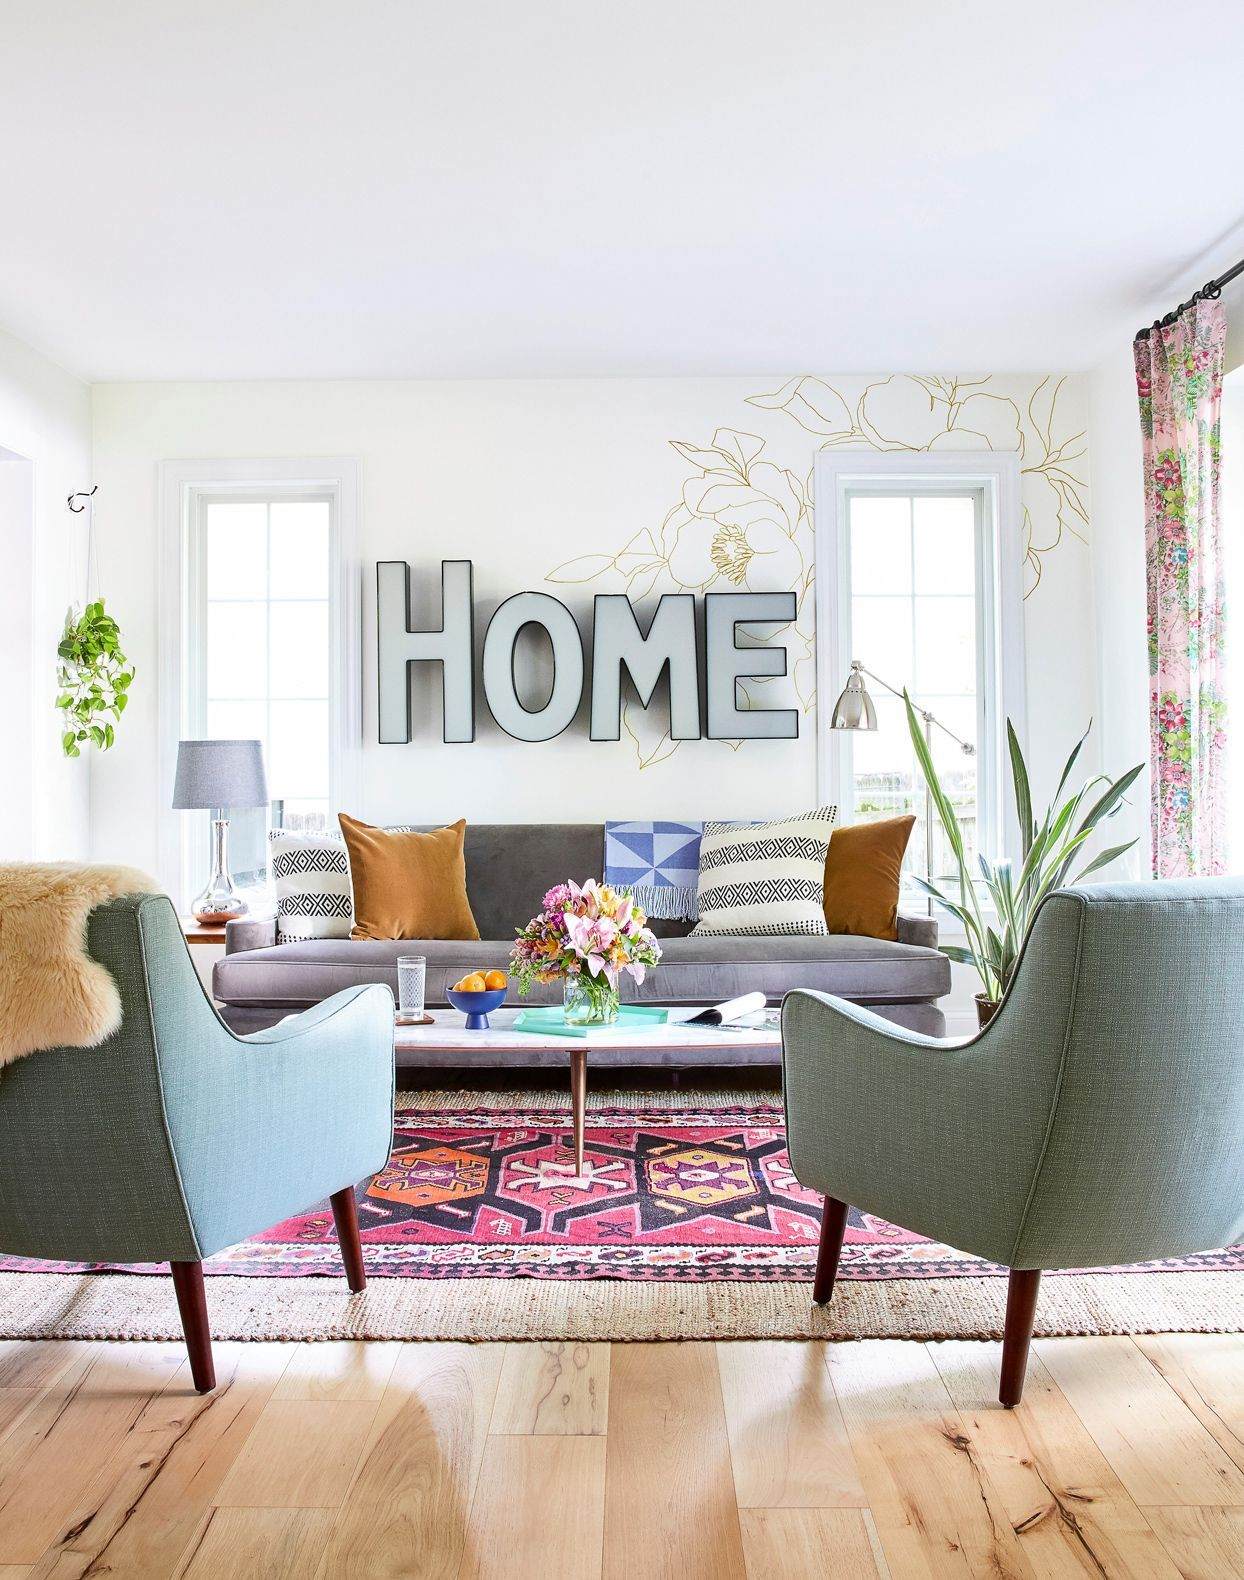 15 Small Living Room Furniture Arrangement Ideas That Maximize Space In 2021 Small Living Room Furniture Living Room Furniture Arrangement Small Living Room The living room home decoration